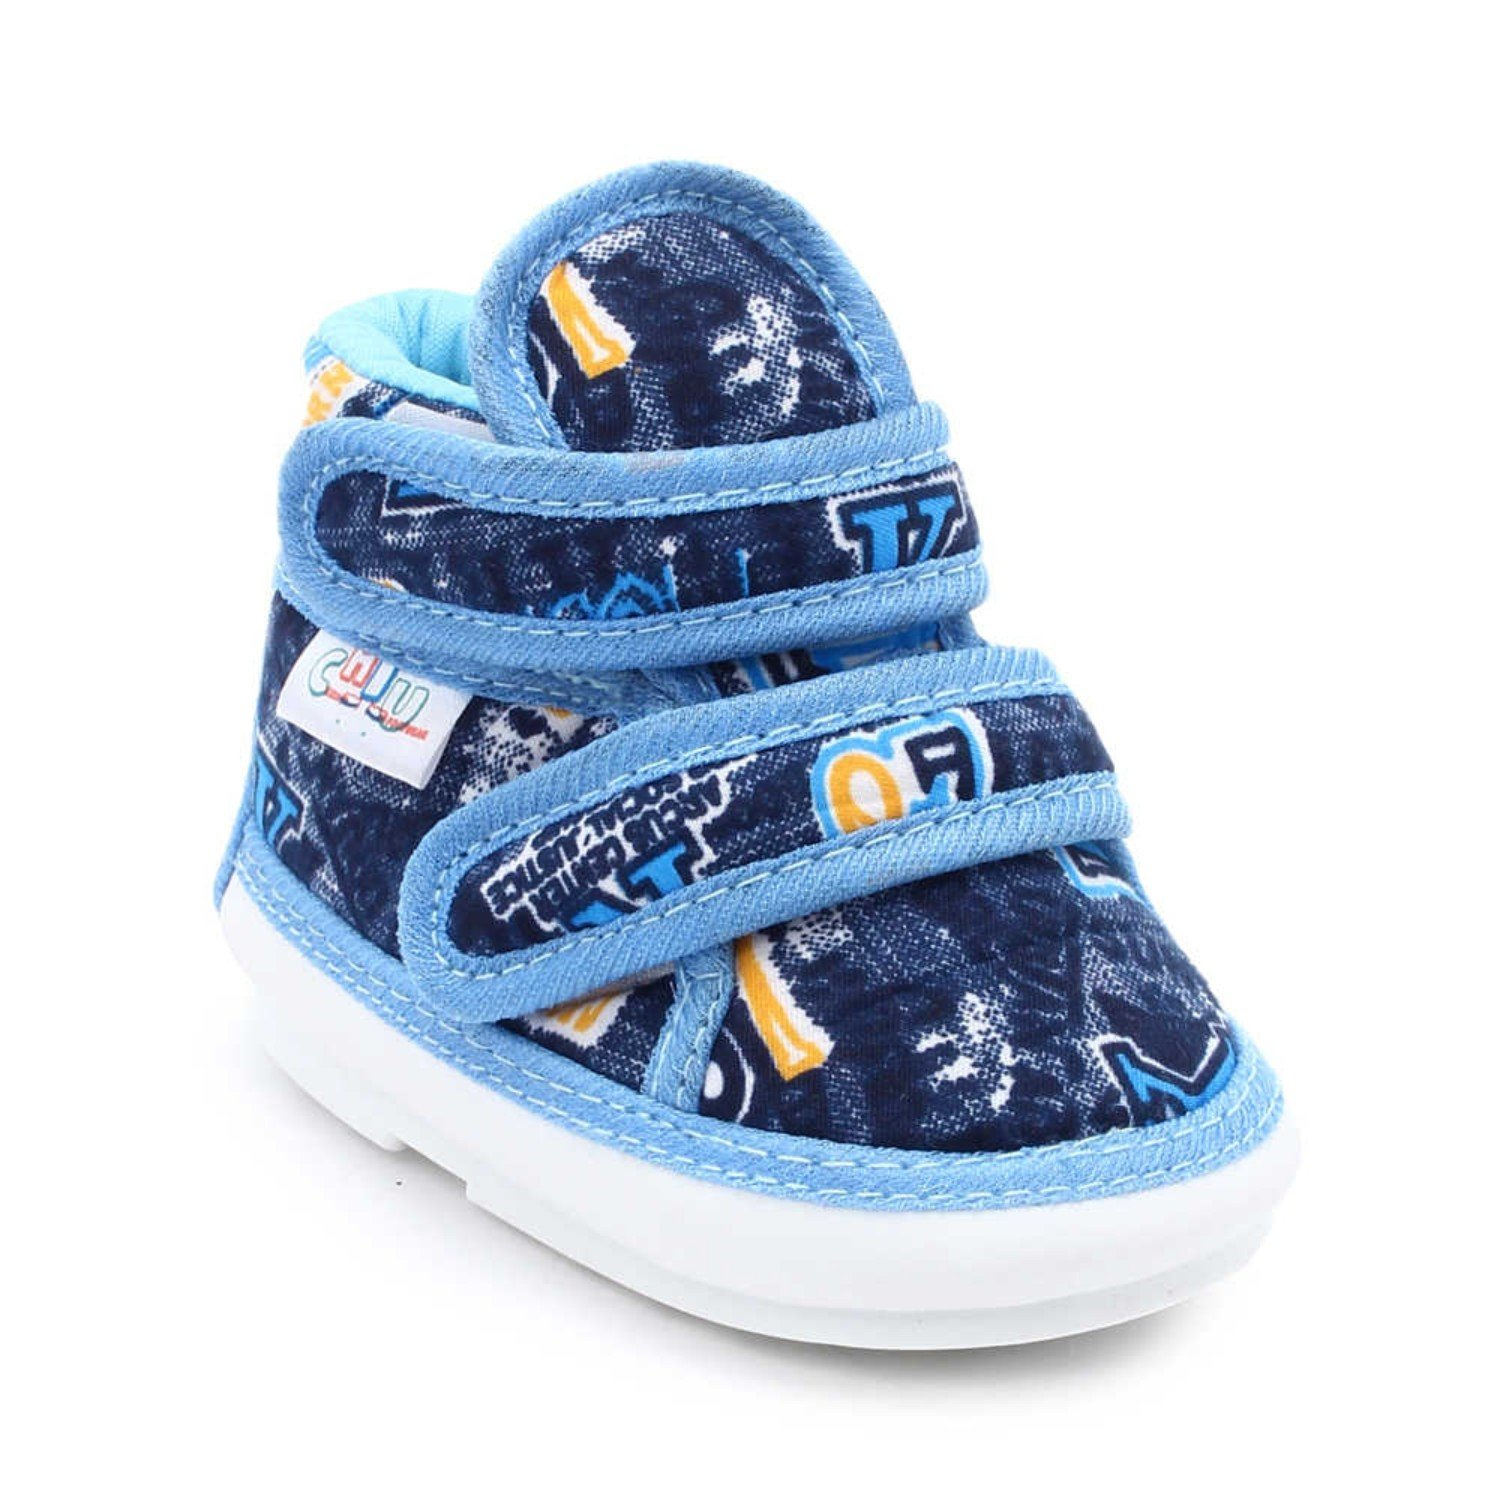 baby boys shoes Buy baby boys shoes line at Best Prices in India